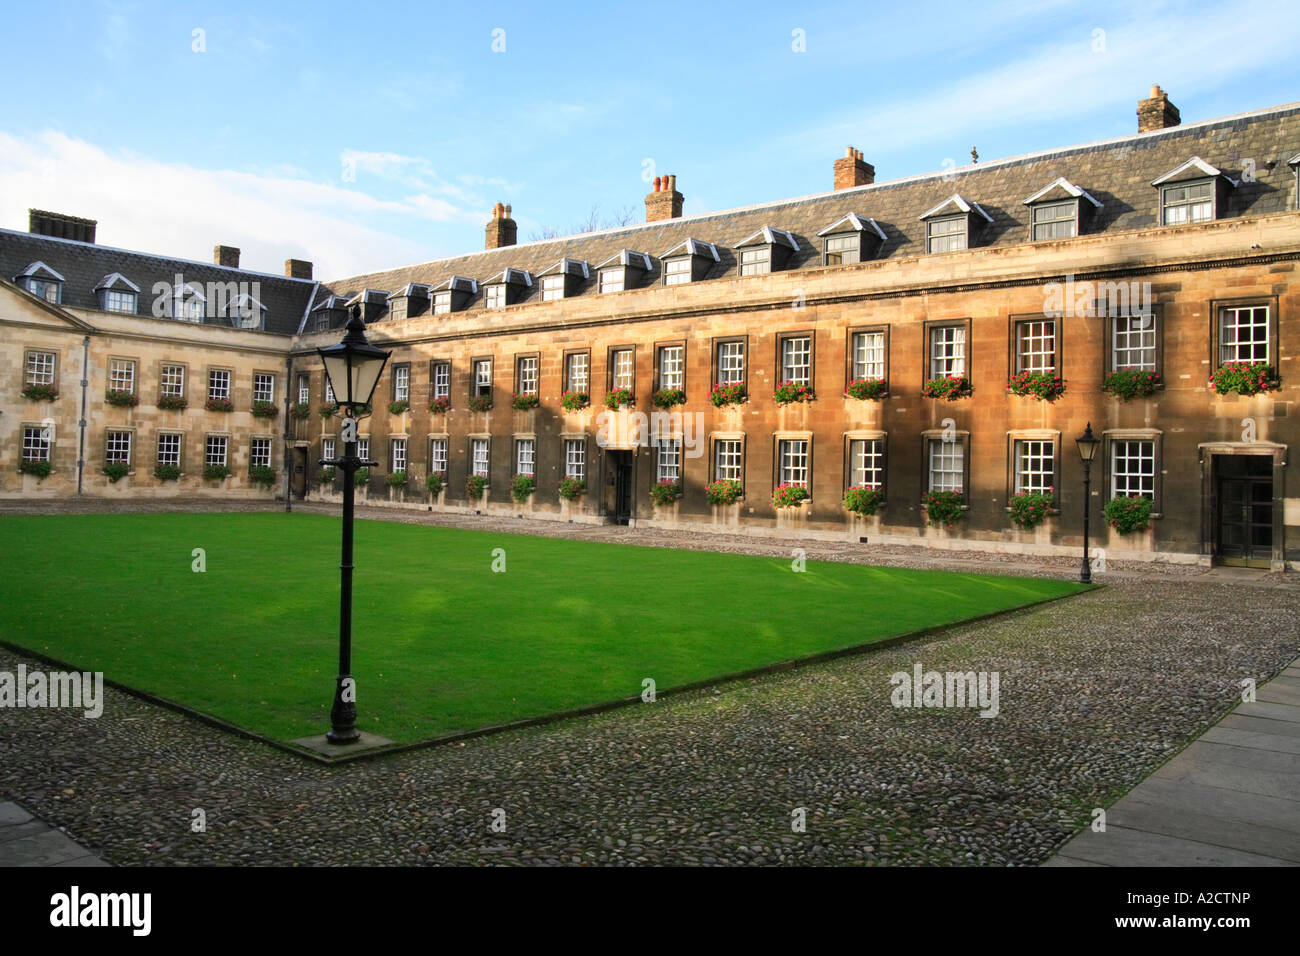 'Peterhouse College' courtyard, 'Cambridge University' - Stock Image